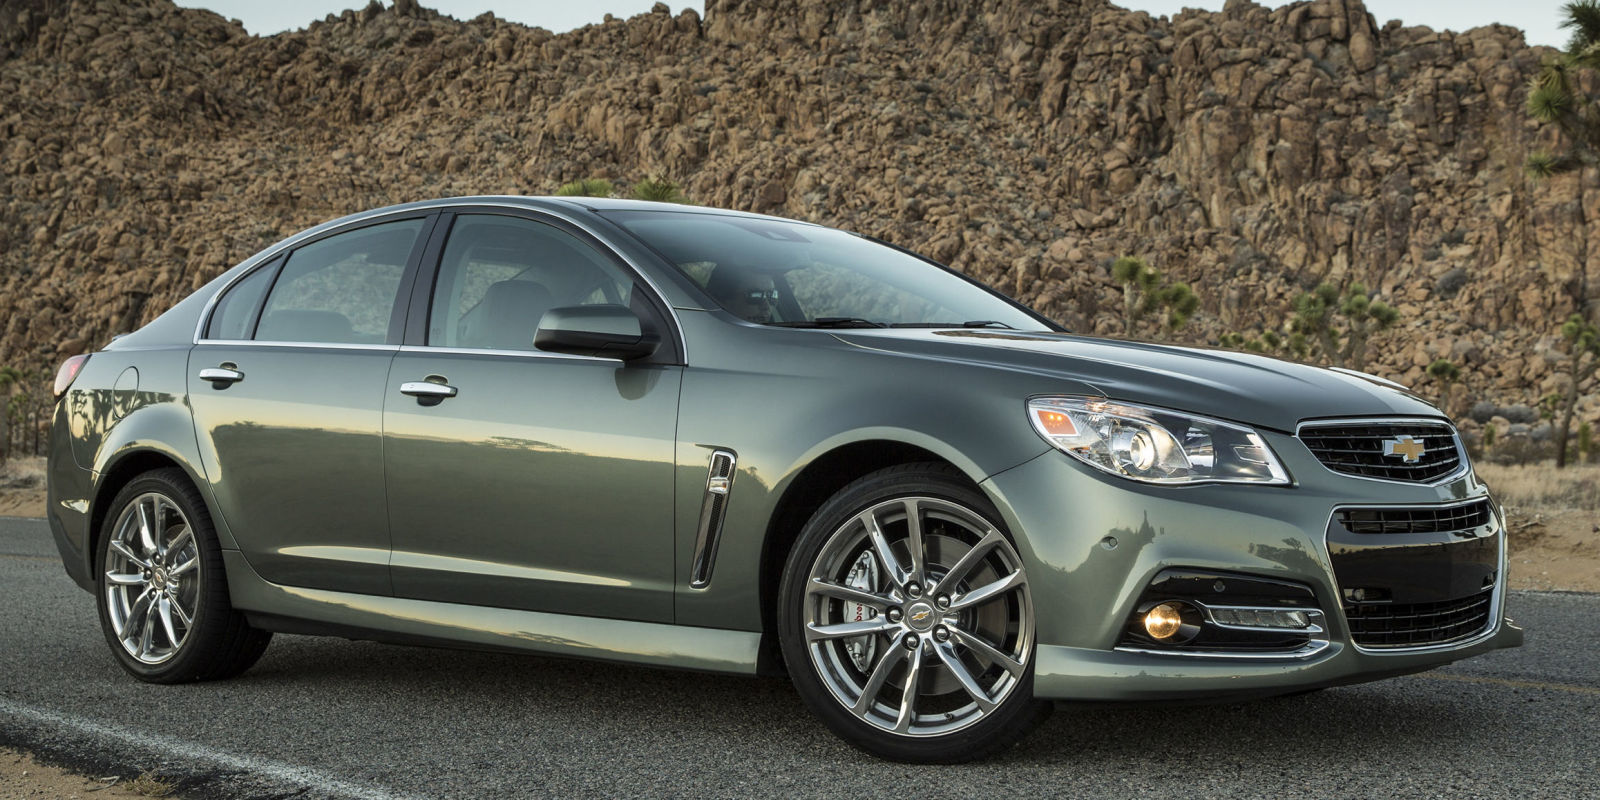 Chevy SS Discontinued - Chevrolet SS Stops Production in 2017